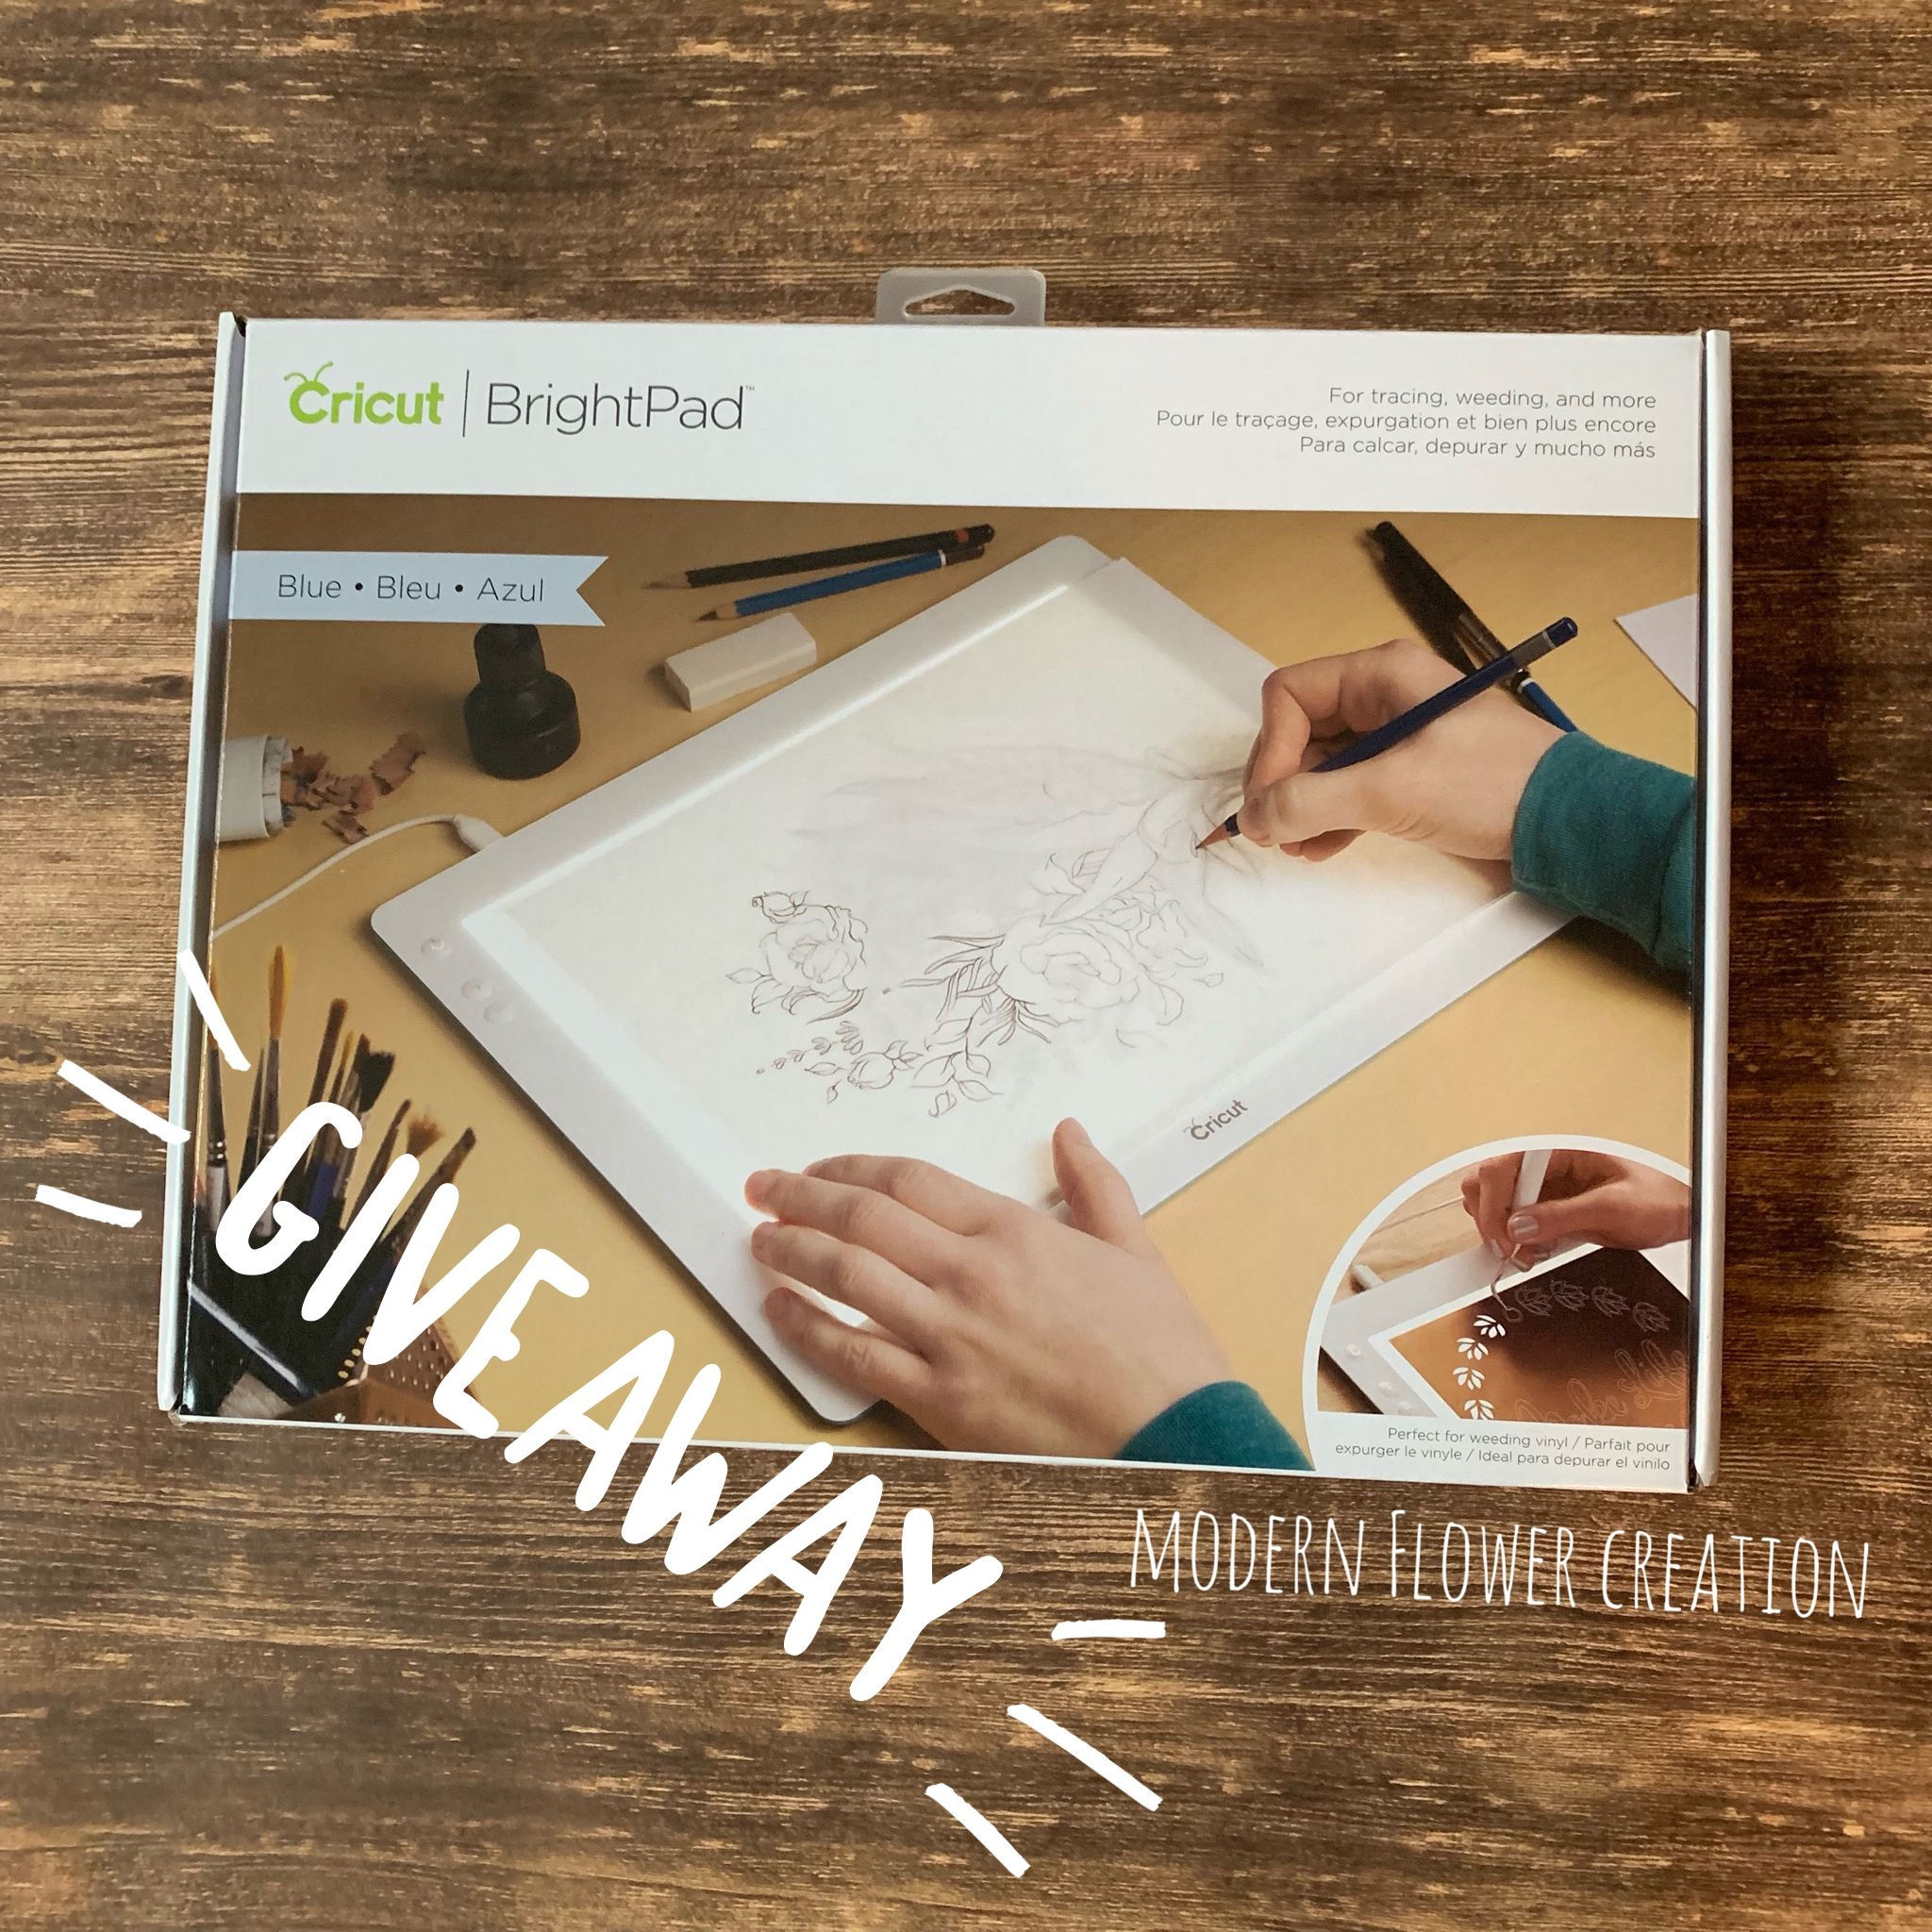 Cricut Brightpad Giveaway Perfect For Tracing And Weeding Cricut Brightpad Cricut Giveaway